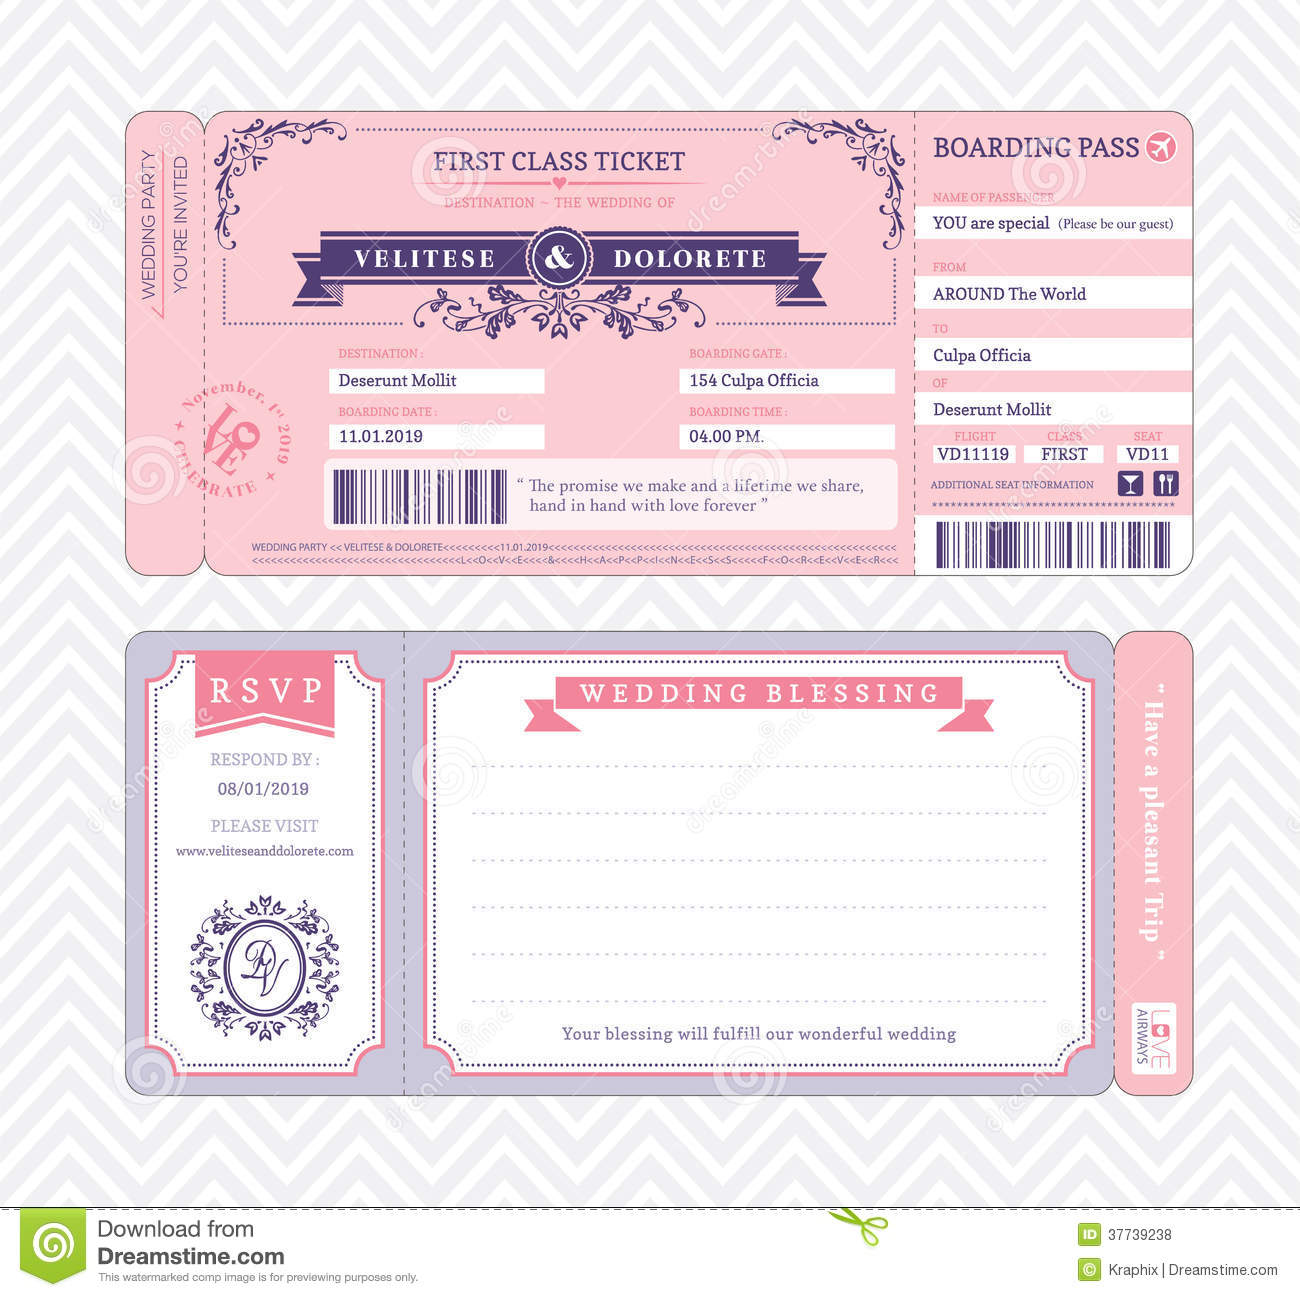 Boarding pass wedding invitation template stock vector download boarding pass wedding invitation template stock vector illustration of graphic design 37739238 stopboris Images